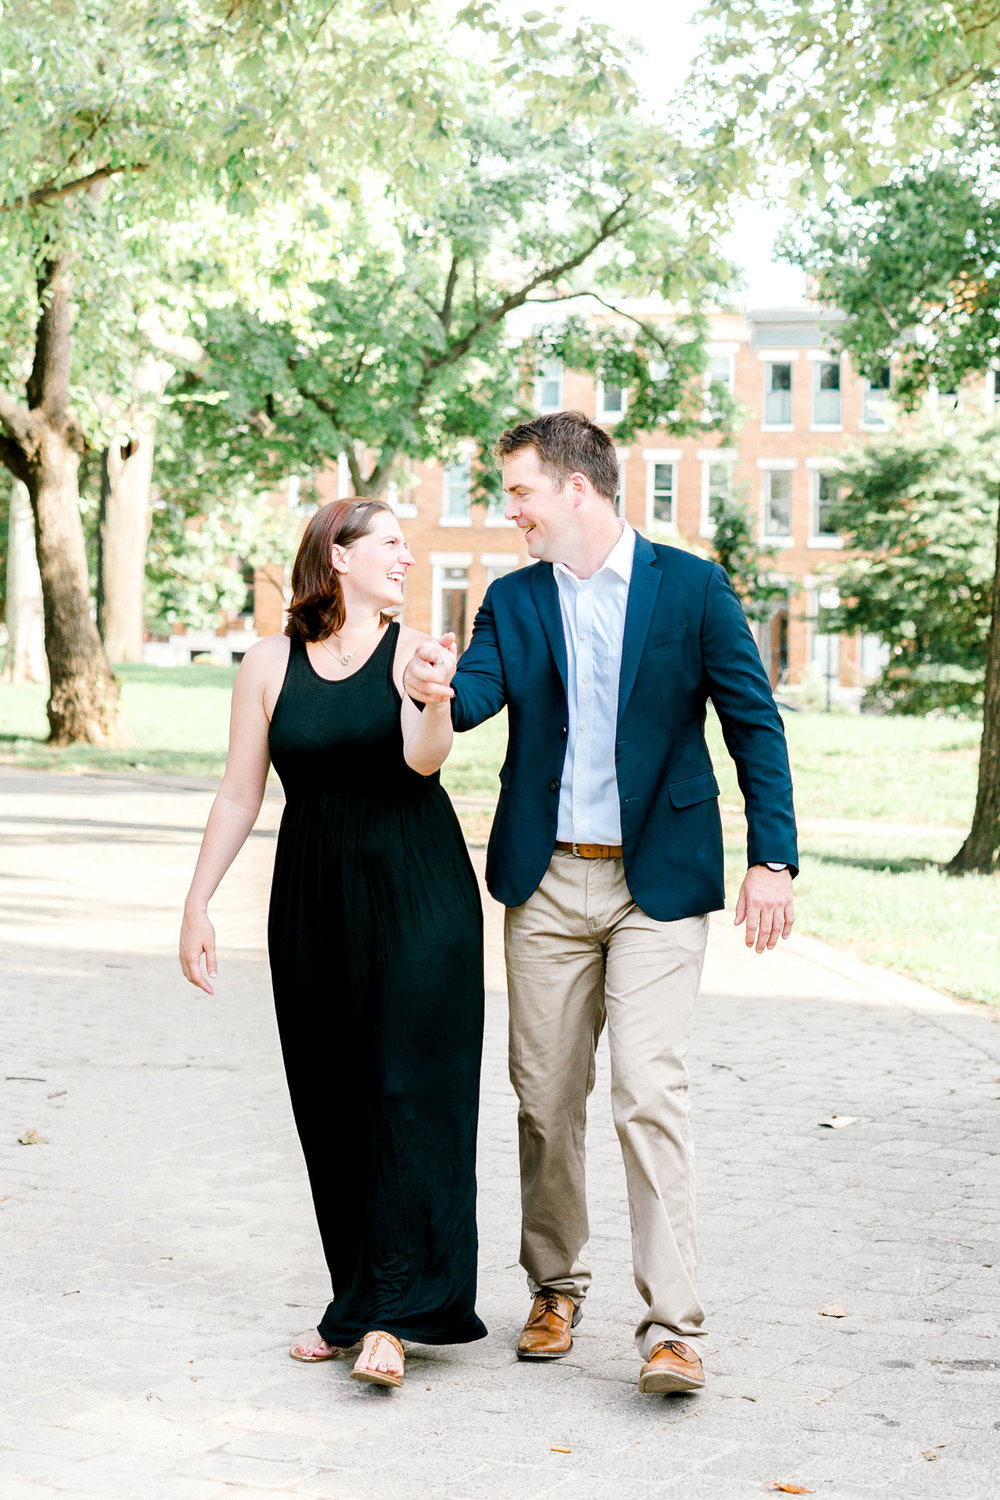 Baltimore Federal Hill Park Stormy Engagement Session Lytle Photo Co (14 of 92).jpg